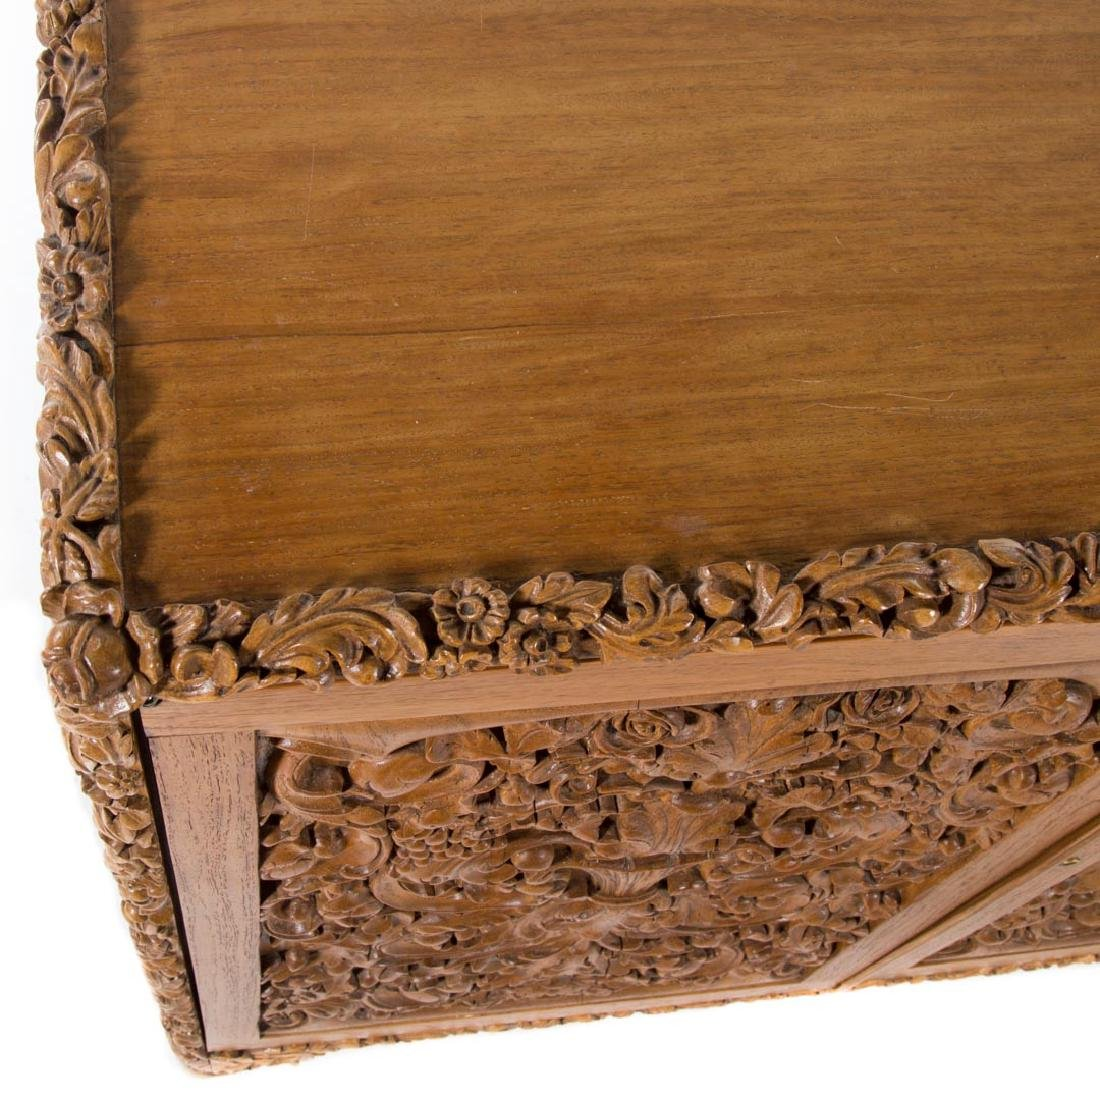 Chinese carved teakwood desk - 3